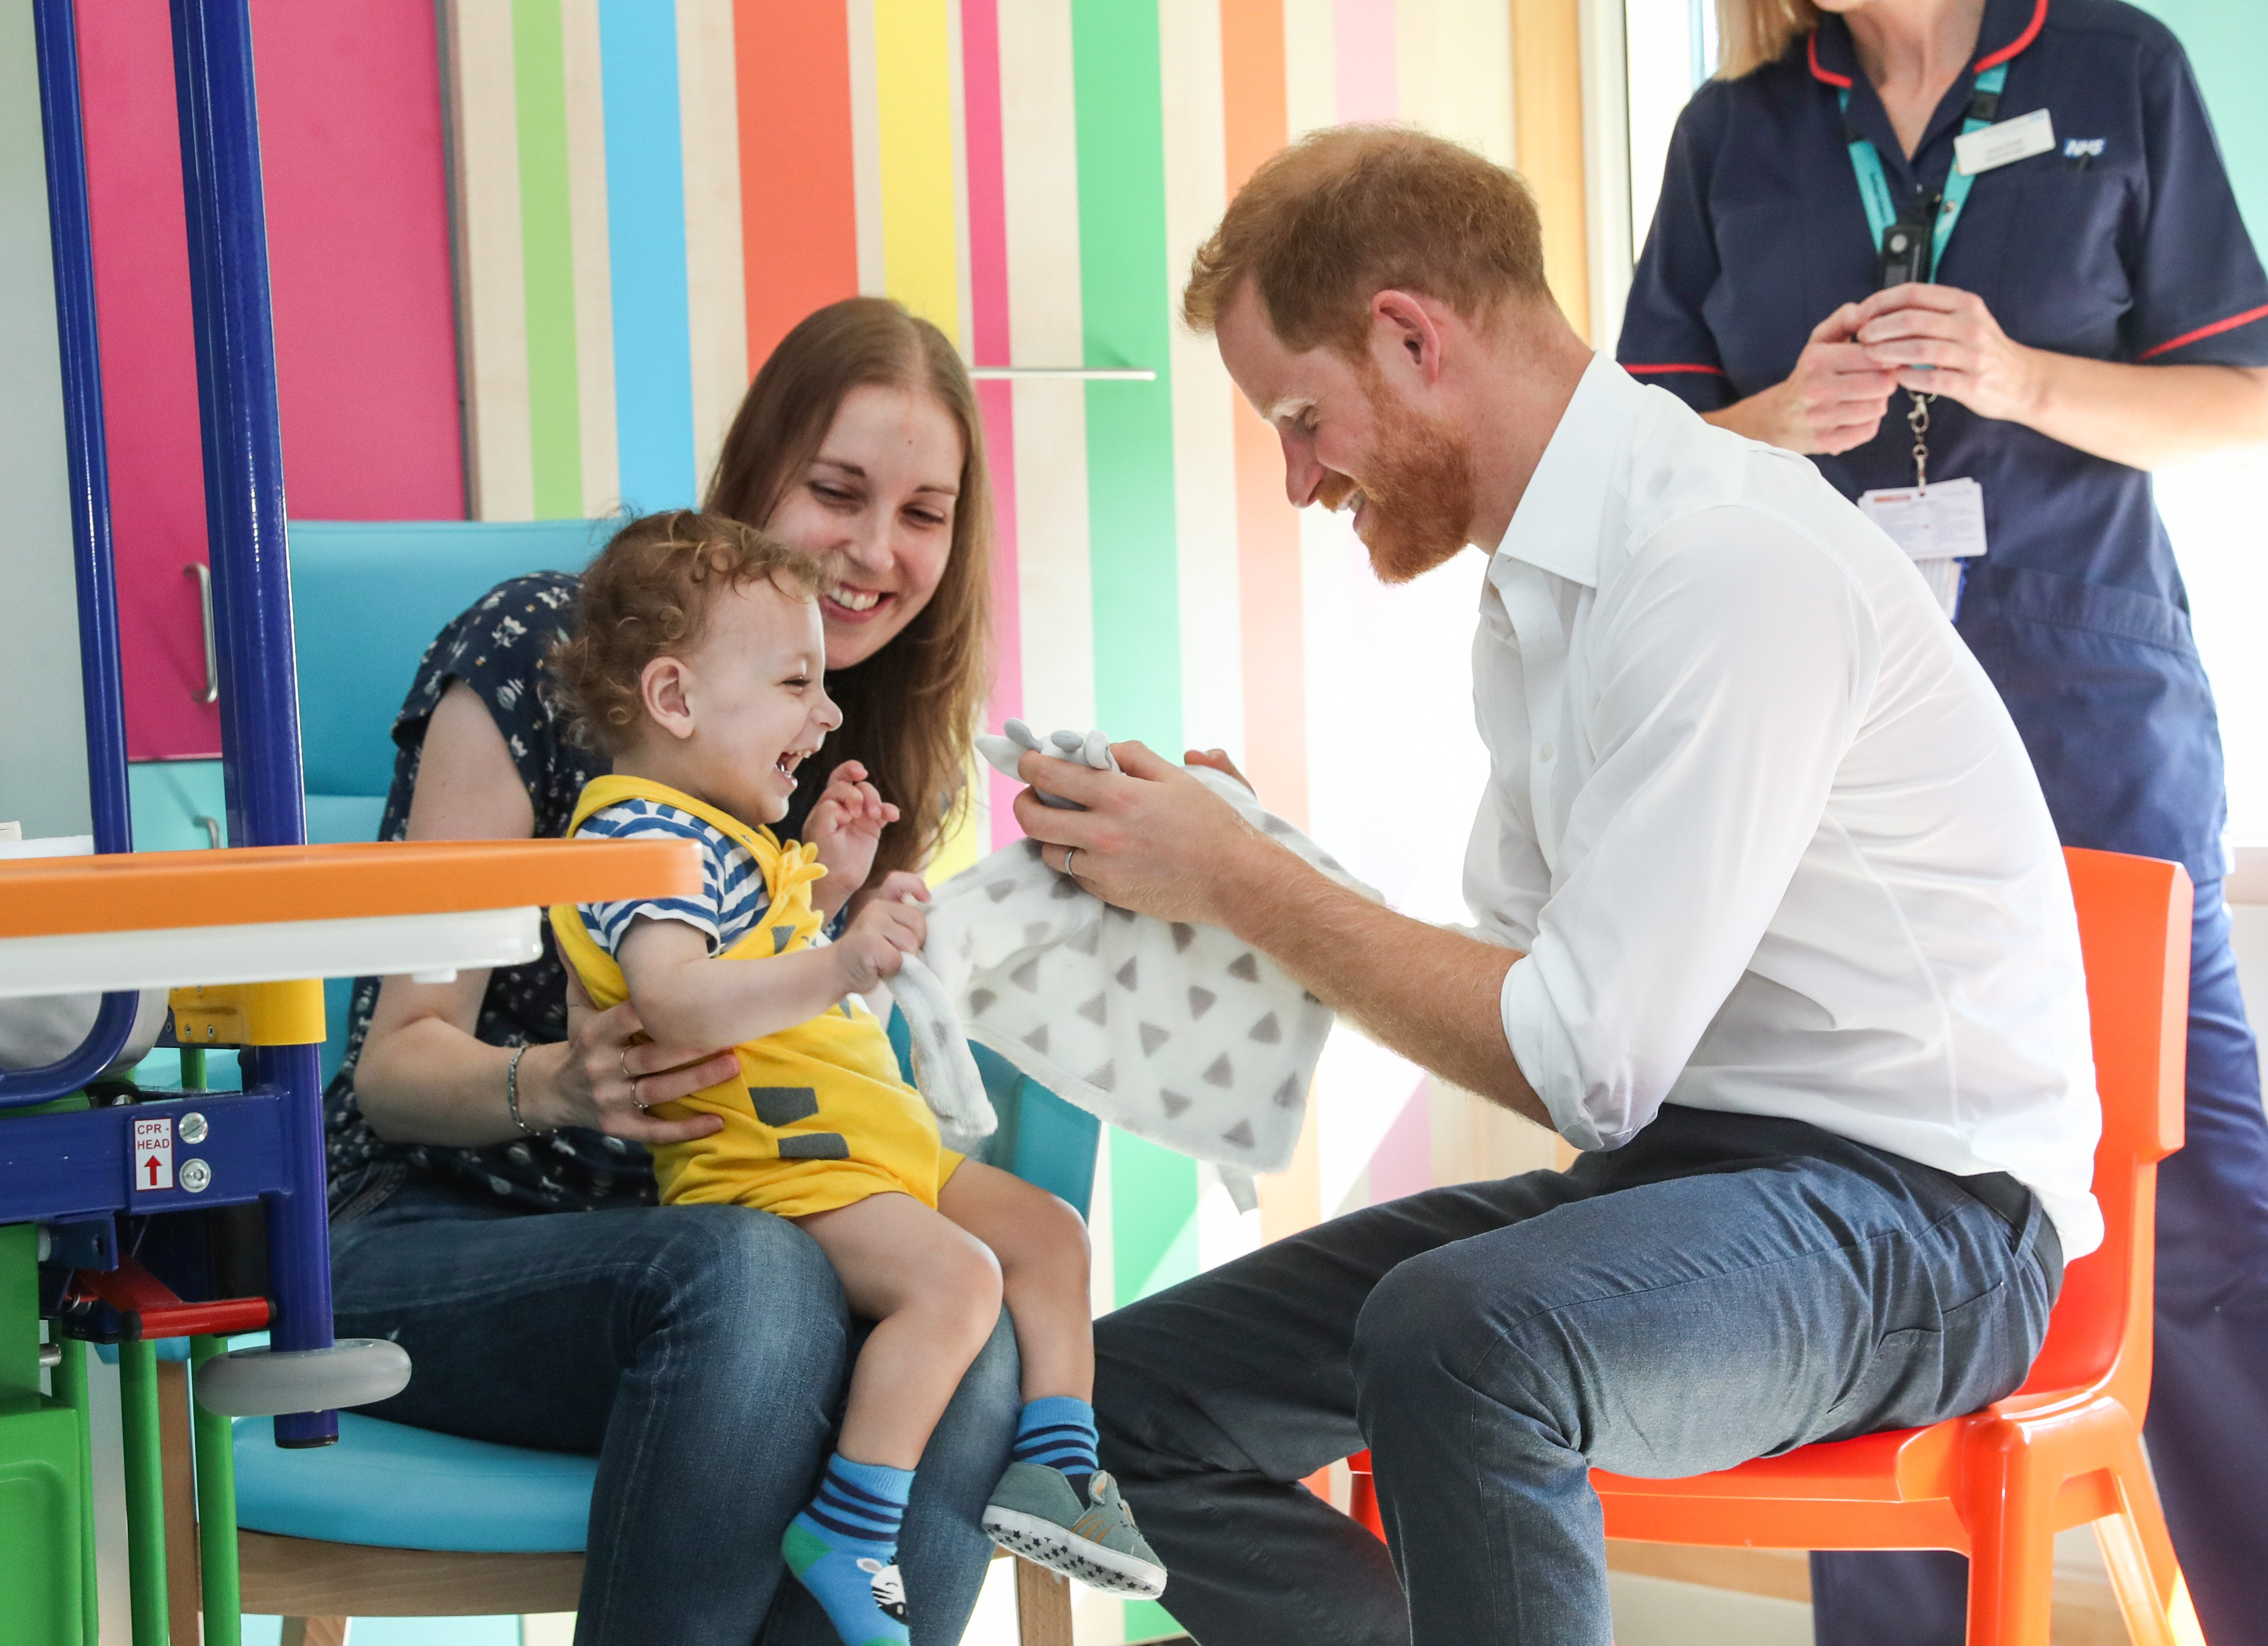 Prince Harry interacts with Noah Nicholson during a visit to Sheffield Children's Hospital on Thursday July 26, 2019 | Photo:Getty Images